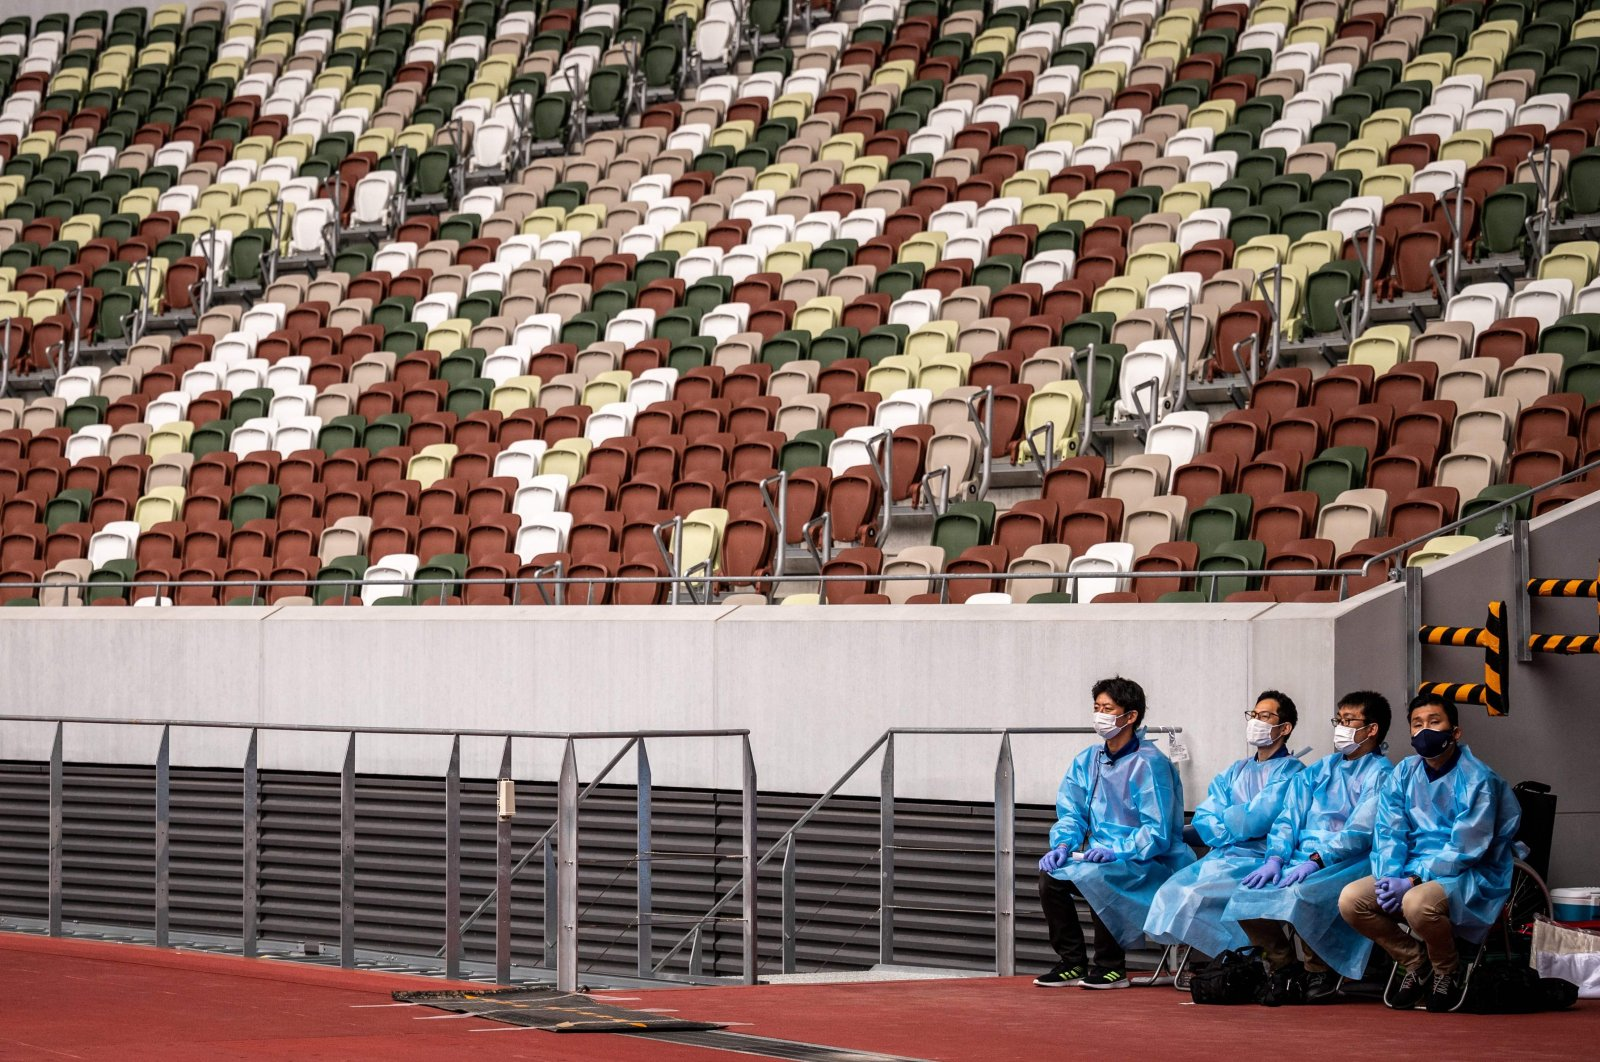 Staff members in protective clothing and masks sit next to empty seats during a para-athletics test event for the 2020 Tokyo Olympics at the National Stadium in Tokyo, Japan, May 11, 2021. (AFP Photo)